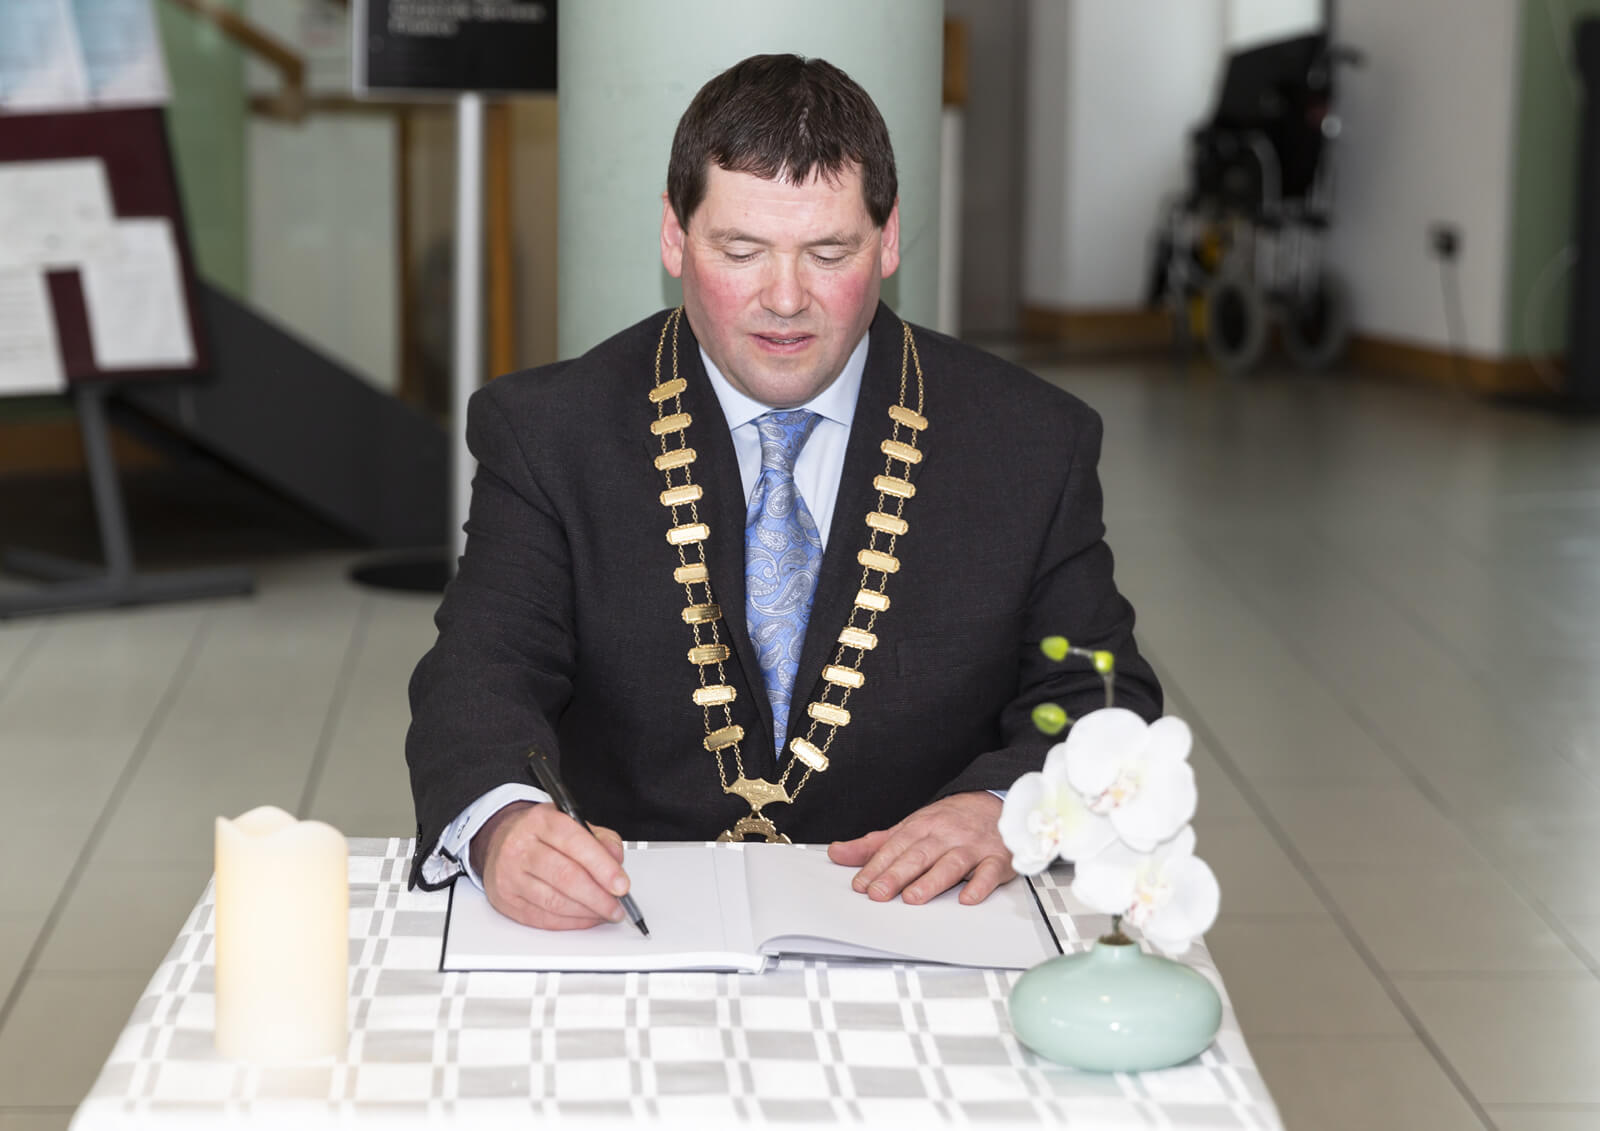 Book of Condolence opened in memory of New Zealand victims